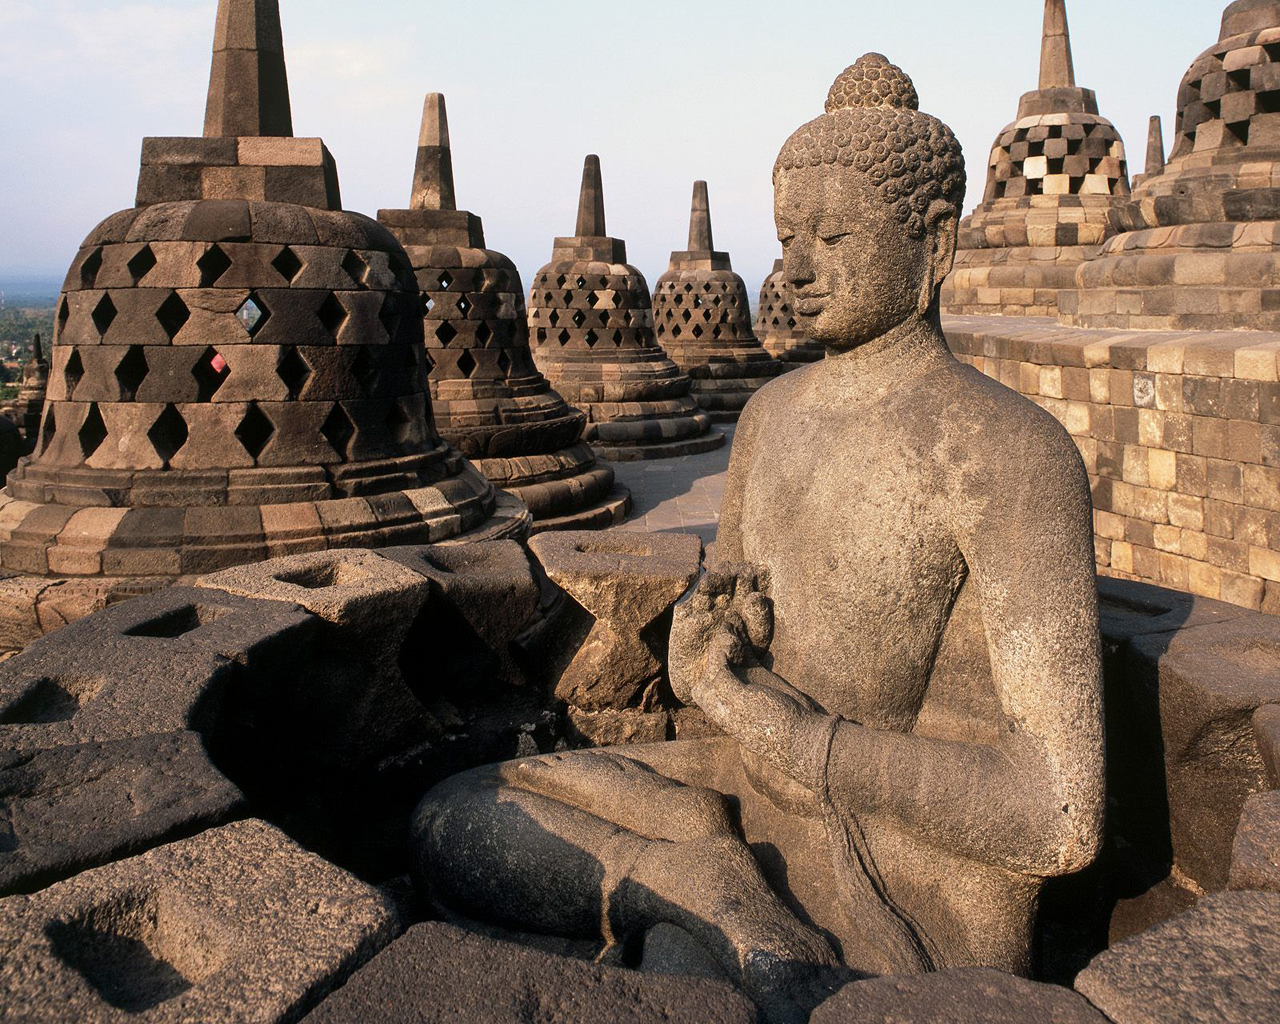 Borobudur Temple Republic of Indonesia Travel Guide  Borobudur Temple Republic of Indonesia Travel Guide | Travel Guide Ideas